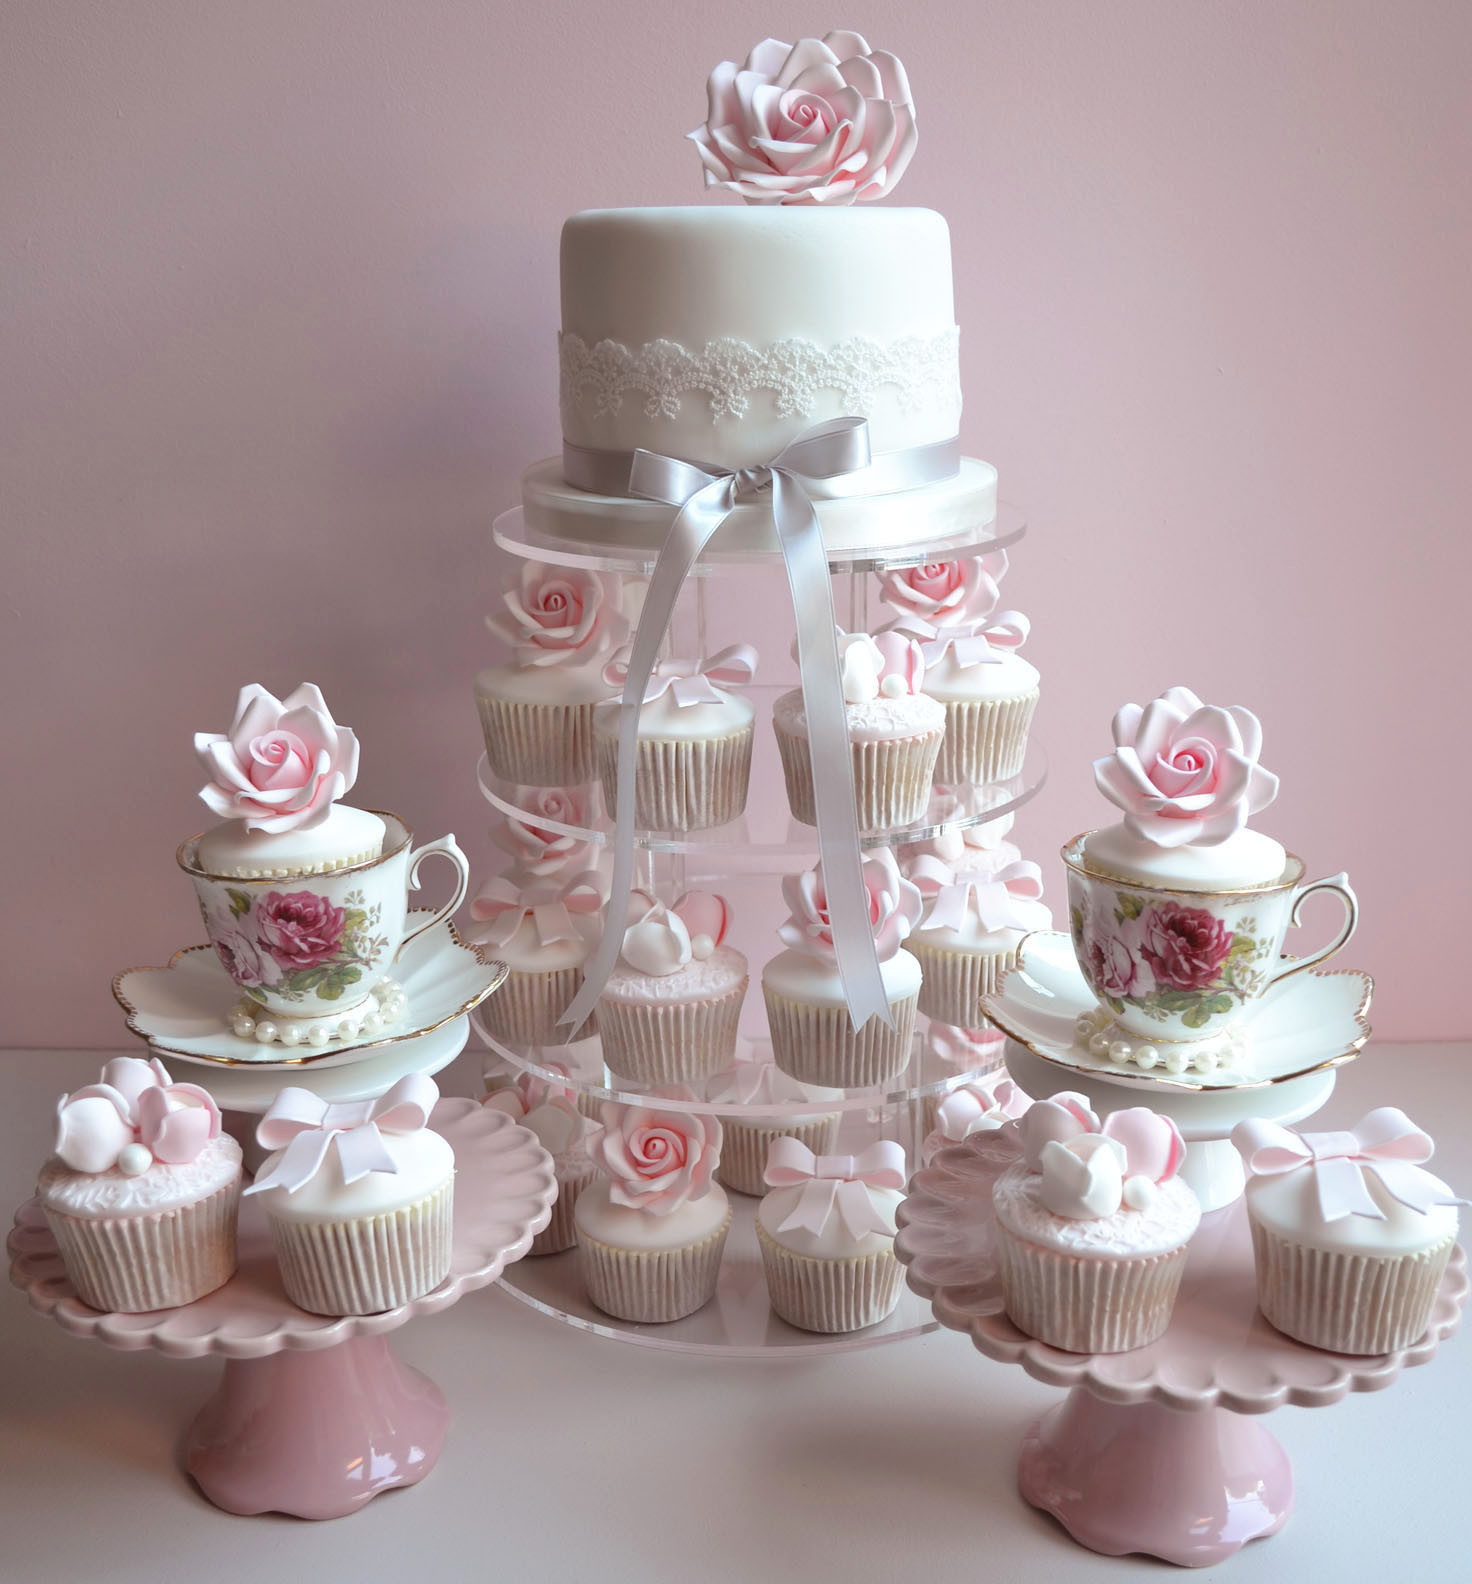 Wedding Cake Cupcakes  Little Paper Cakes Beautiful Vintage Wedding Cupcakes